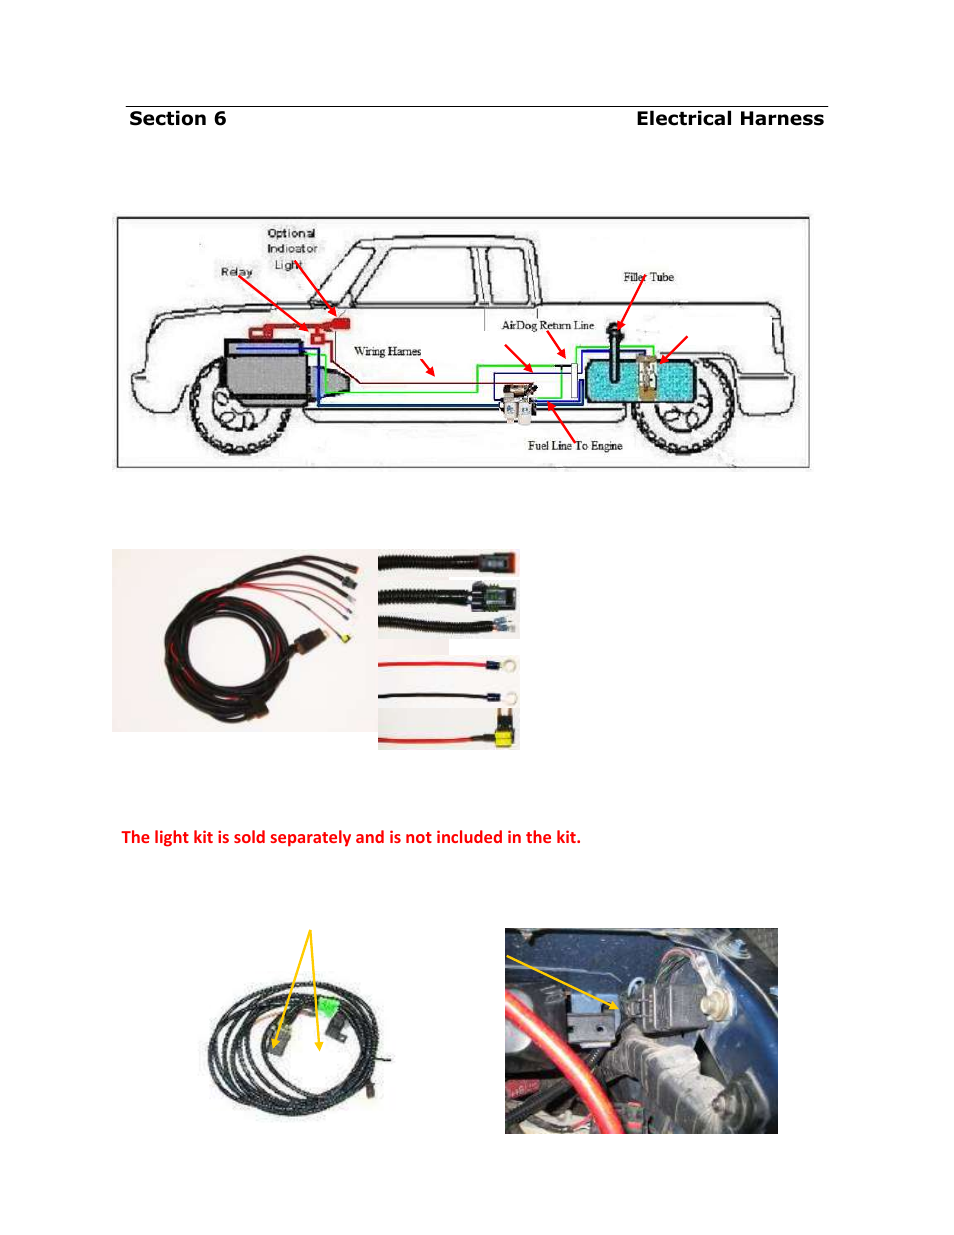 pureflow airdog df 165 4g gm duramax 2015 page14 the airdog, pureflow airdog airdog, wiring diagram (in red airdog 2 wiring harness at soozxer.org